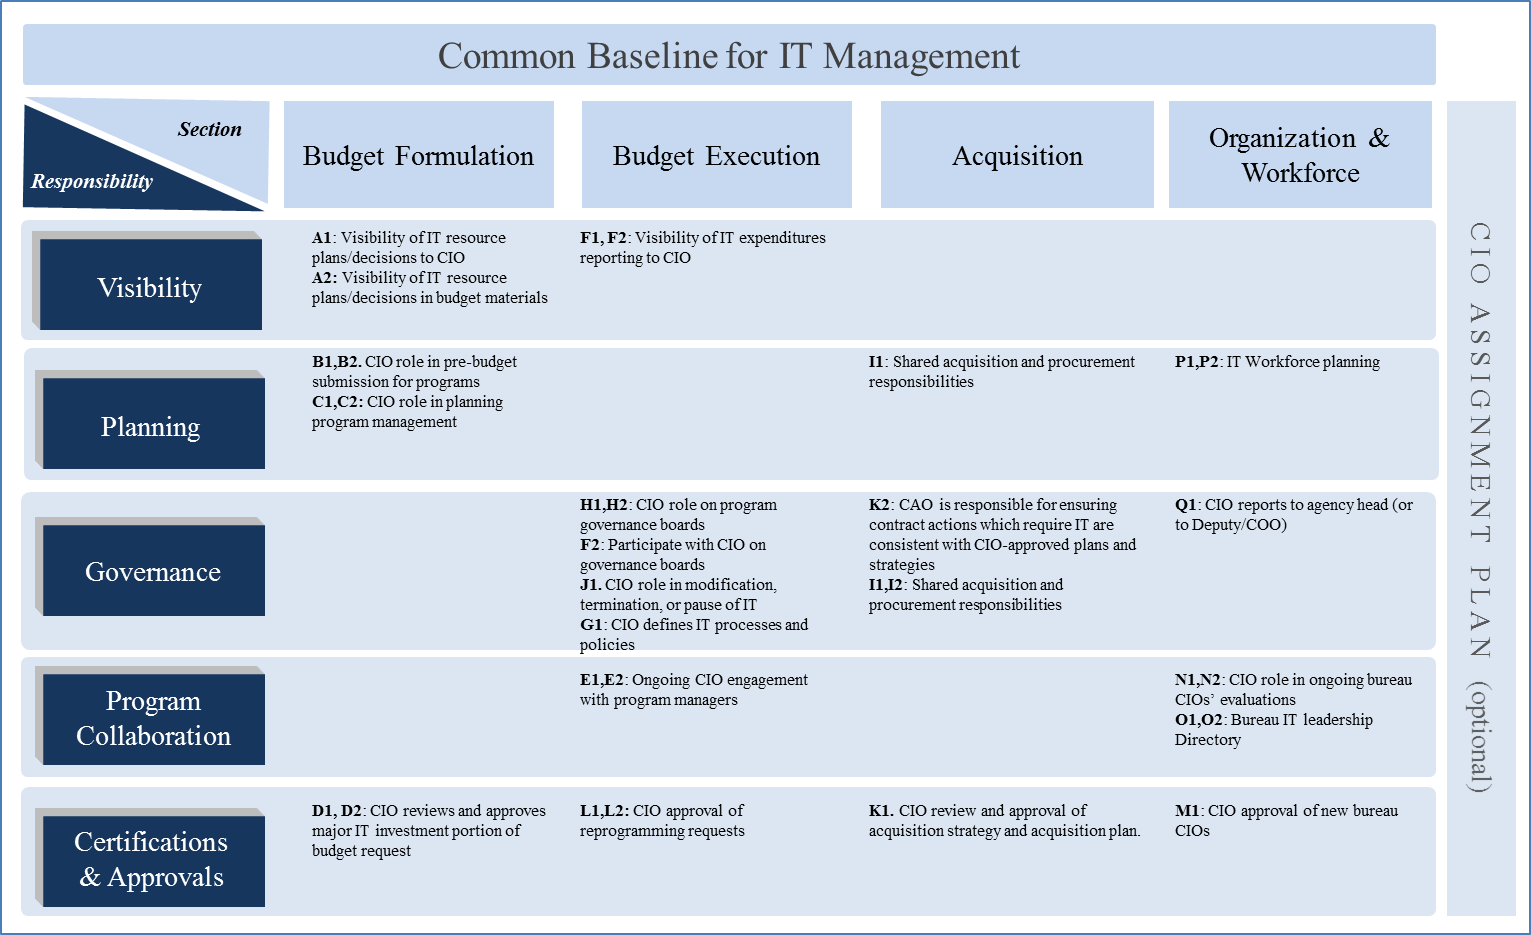 Common baseline for IT Management